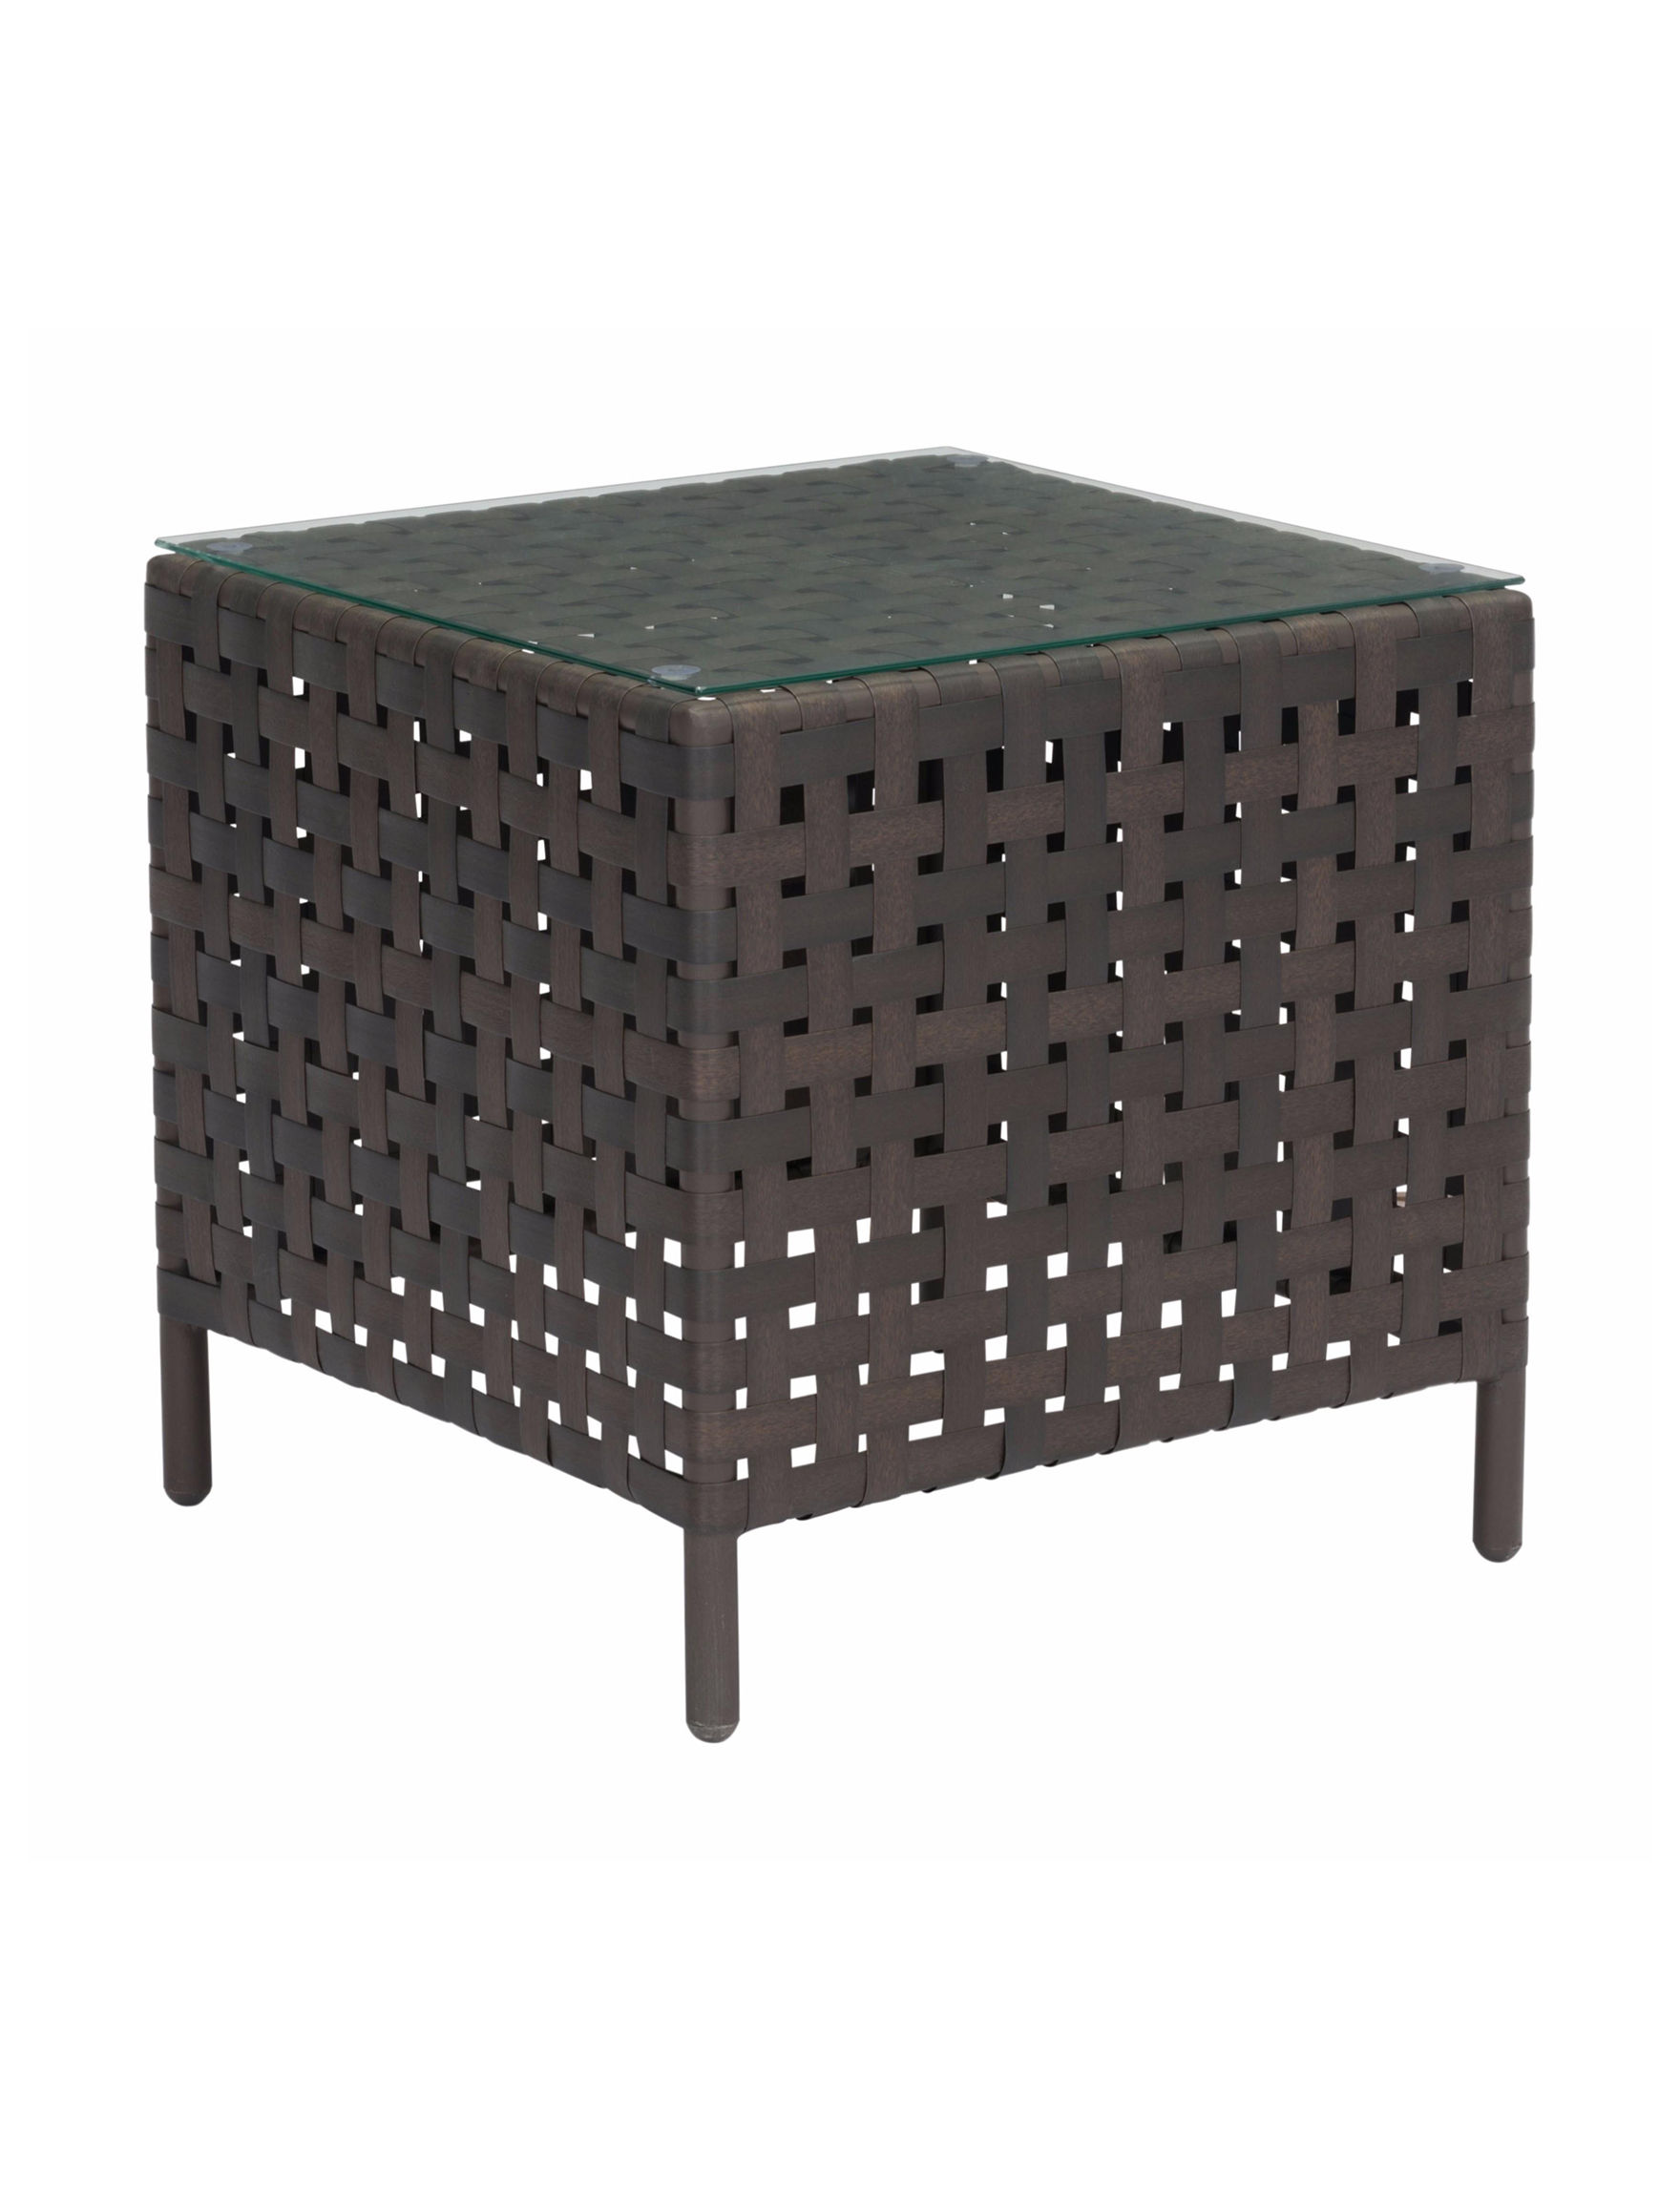 Zuo Modern Brown Accent & End Tables Living Room Furniture Patio & Outdoor Furniture